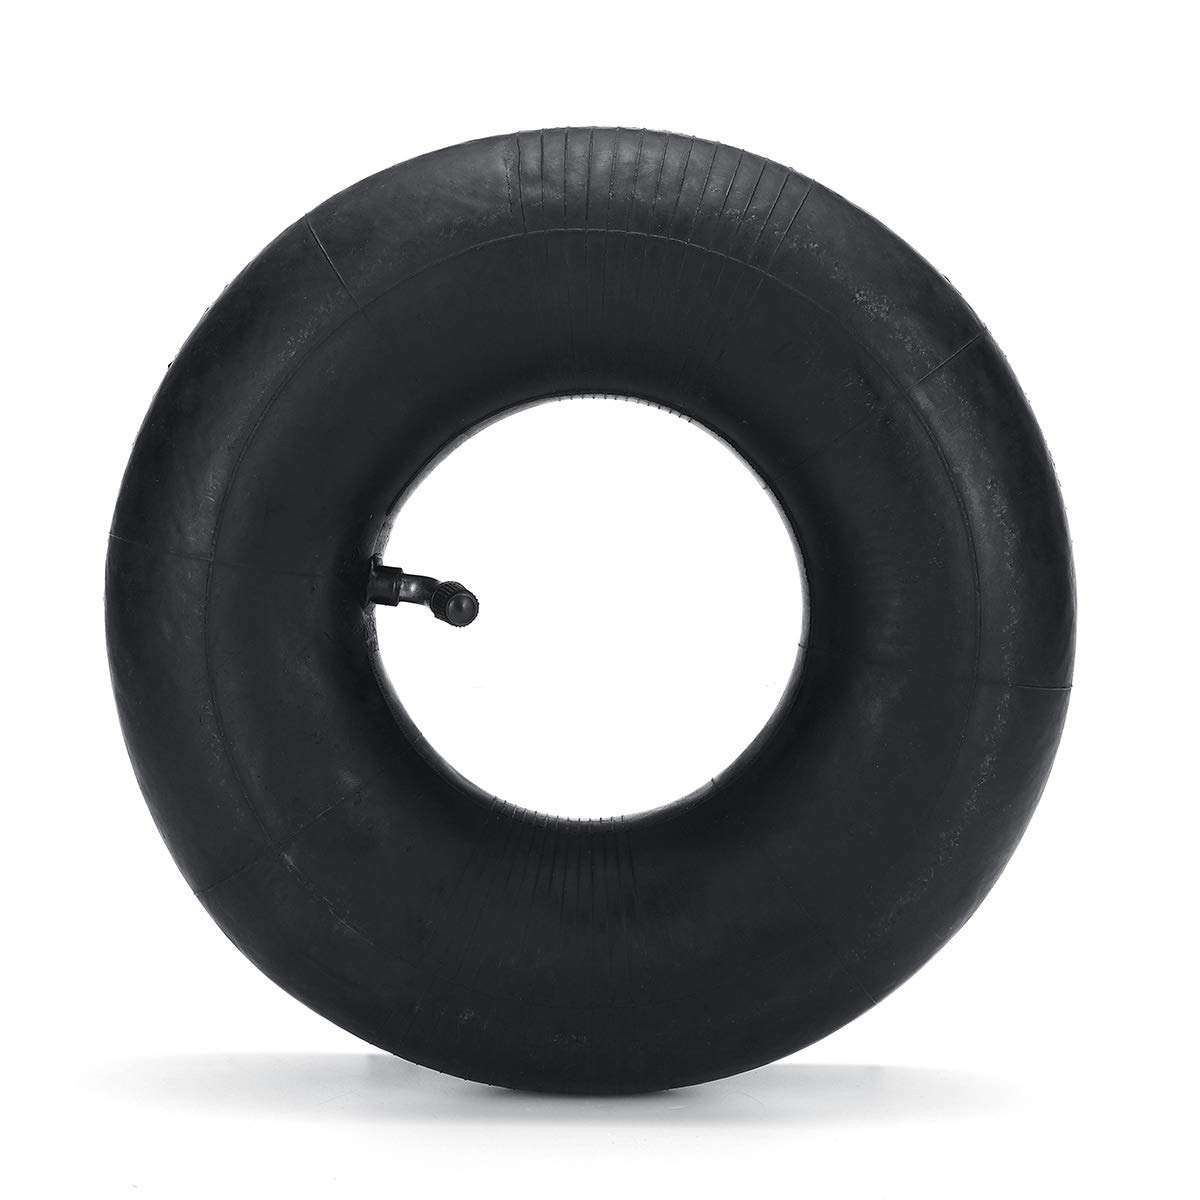 Wooya 2.50-4 Inner Tube For Pneumatic Wheel Suit For 8inch Trolley Wheels Bent Valve air-001